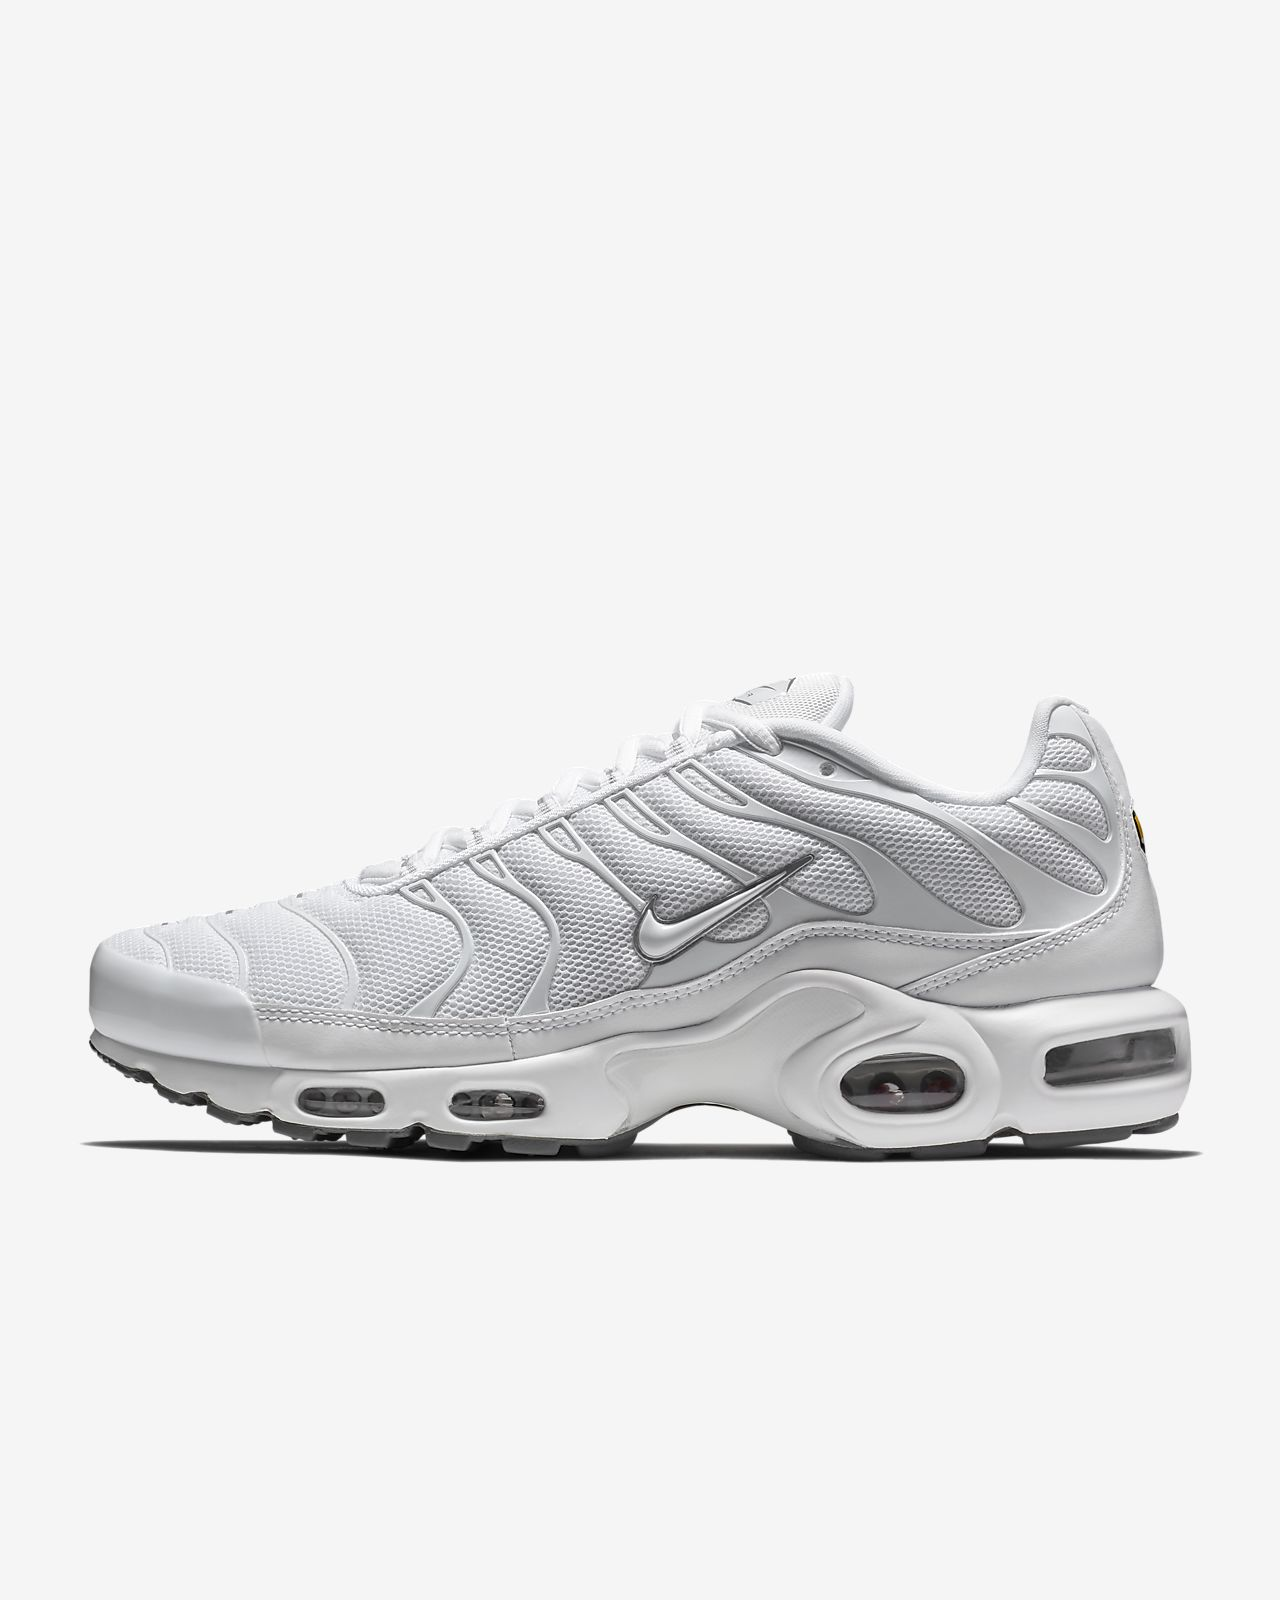 Nike Air Max Plus herresko